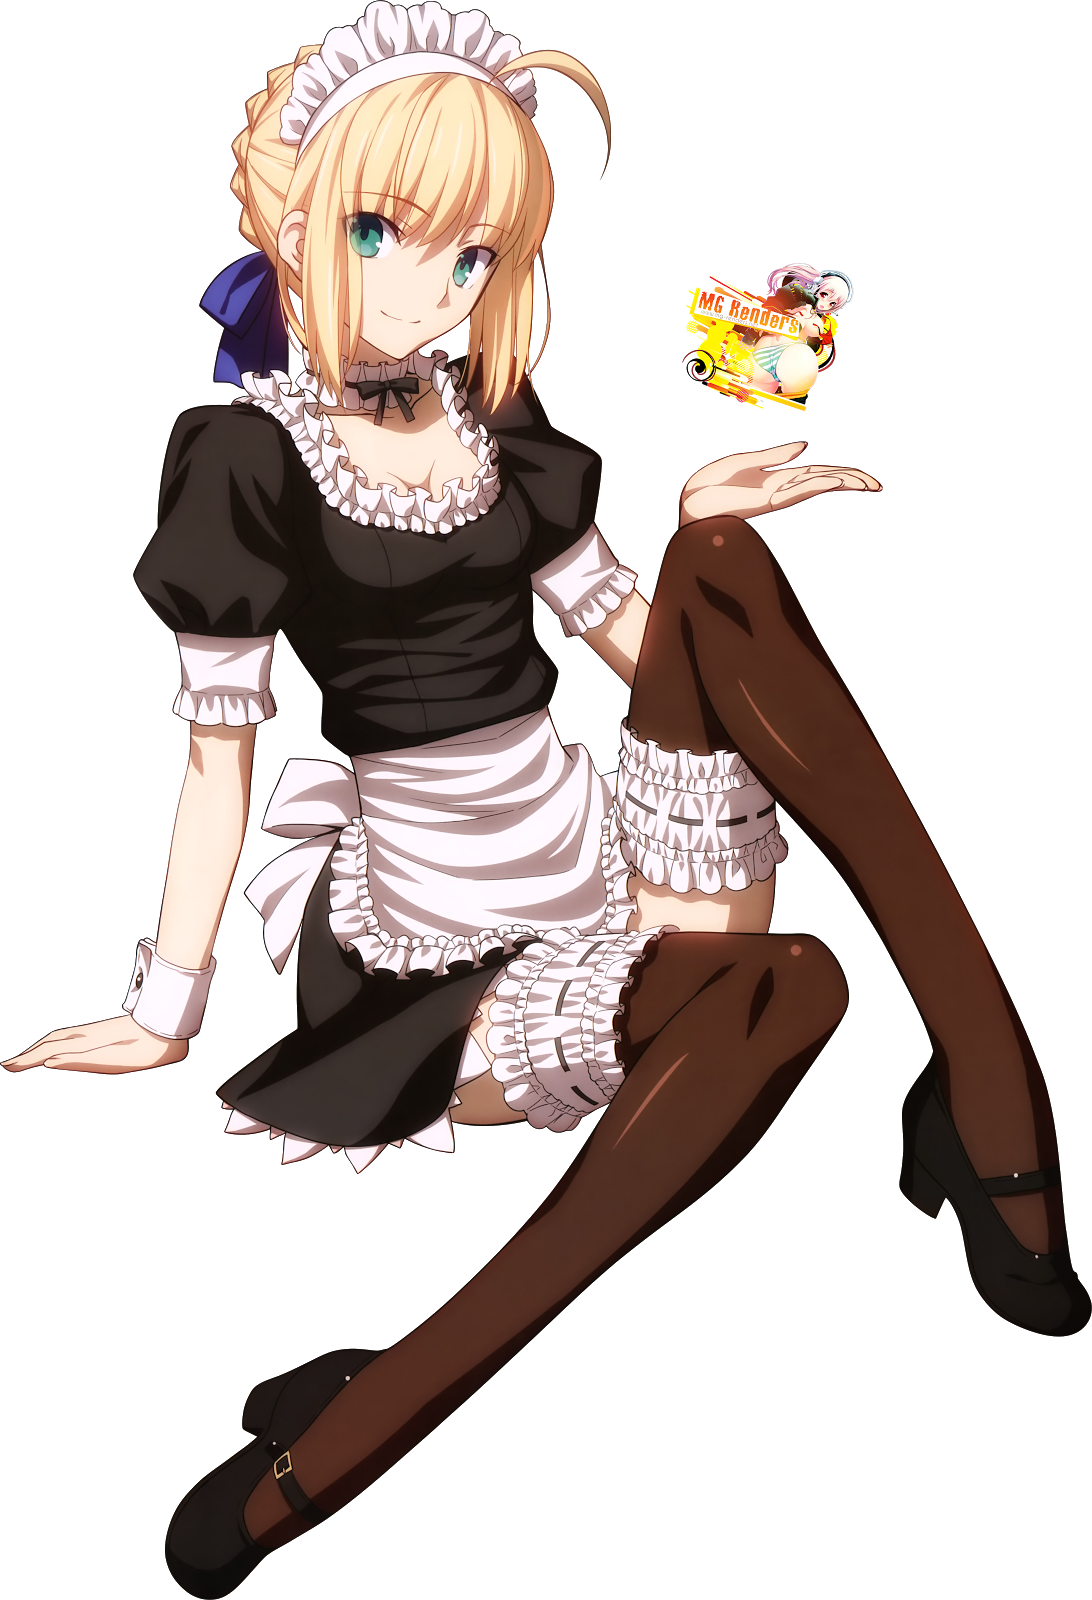 Tags: Anime, Render,  Arturia Pendragon,  Fate series,  Fate stay night,  Maid,  Saber,  PNG, Image, Picture